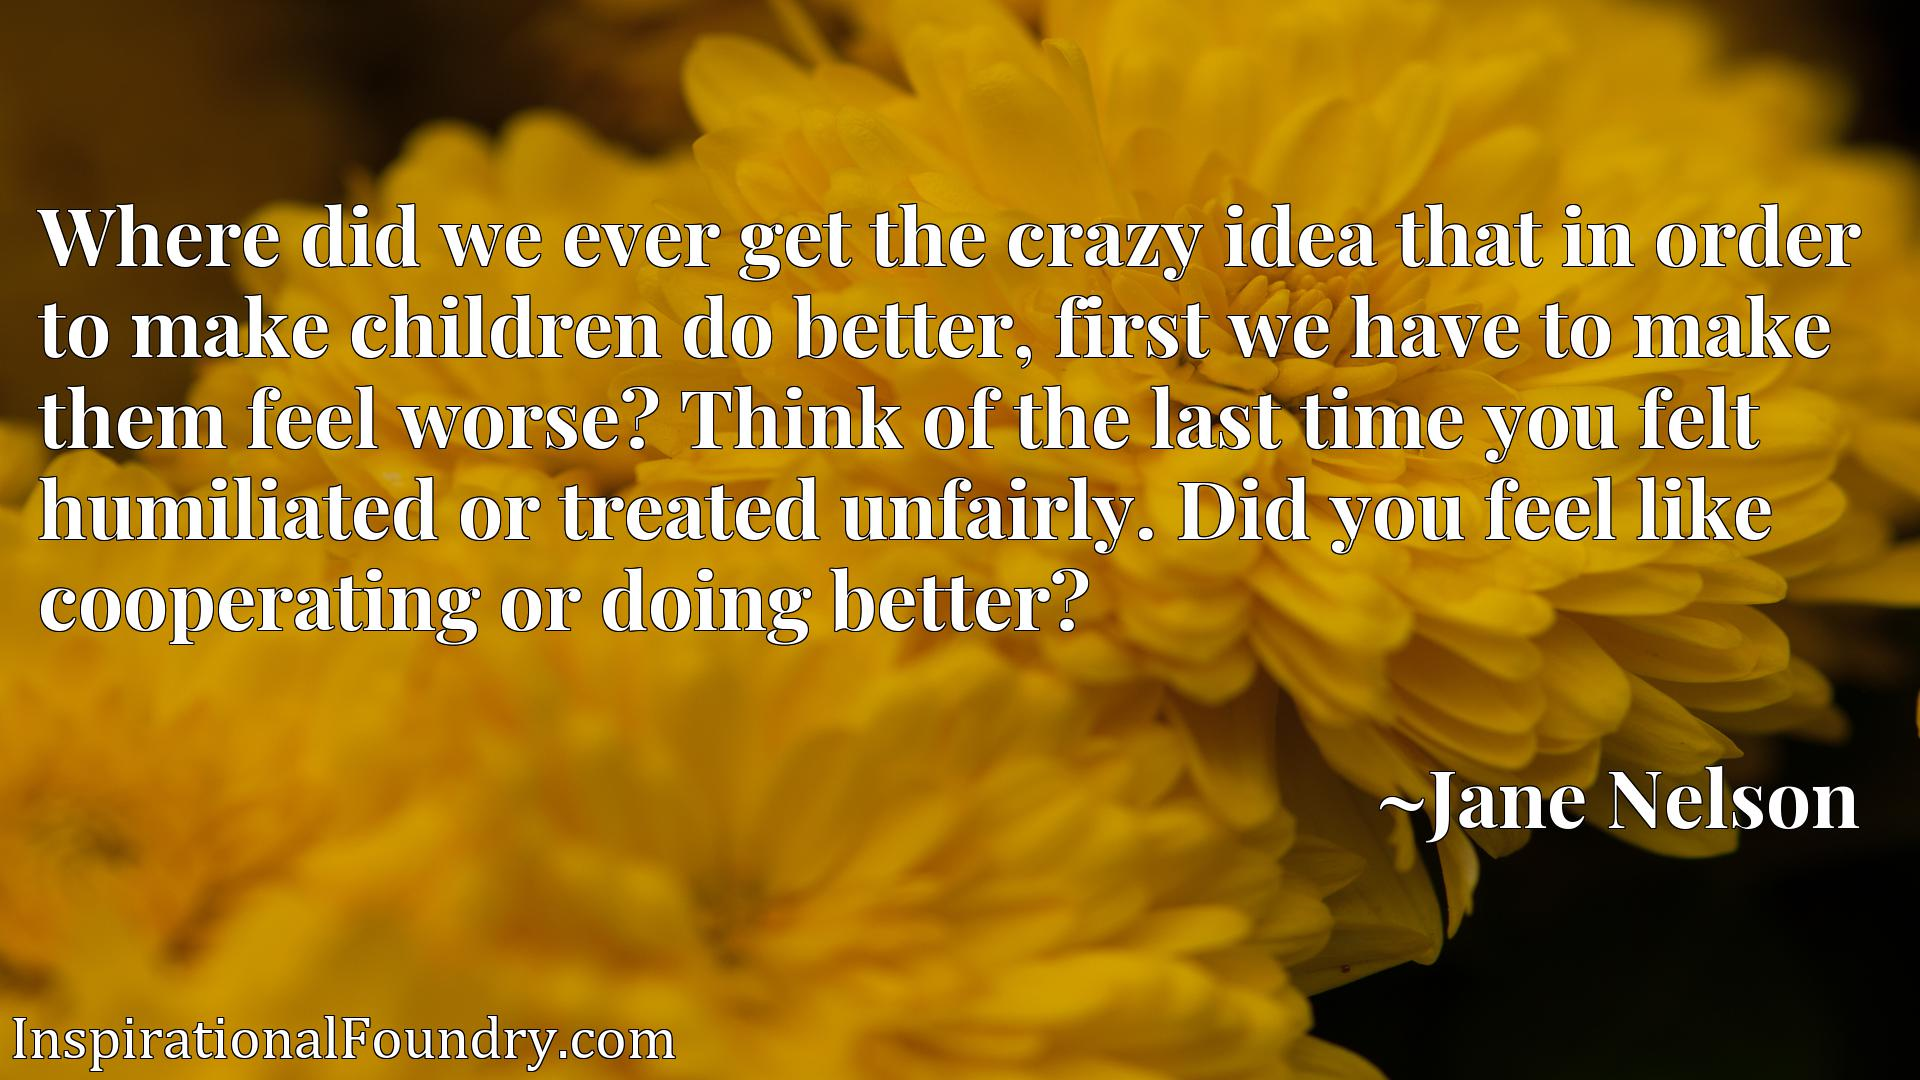 Where did we ever get the crazy idea that in order to make children do better, first we have to make them feel worse? Think of the last time you felt humiliated or treated unfairly. Did you feel like cooperating or doing better?